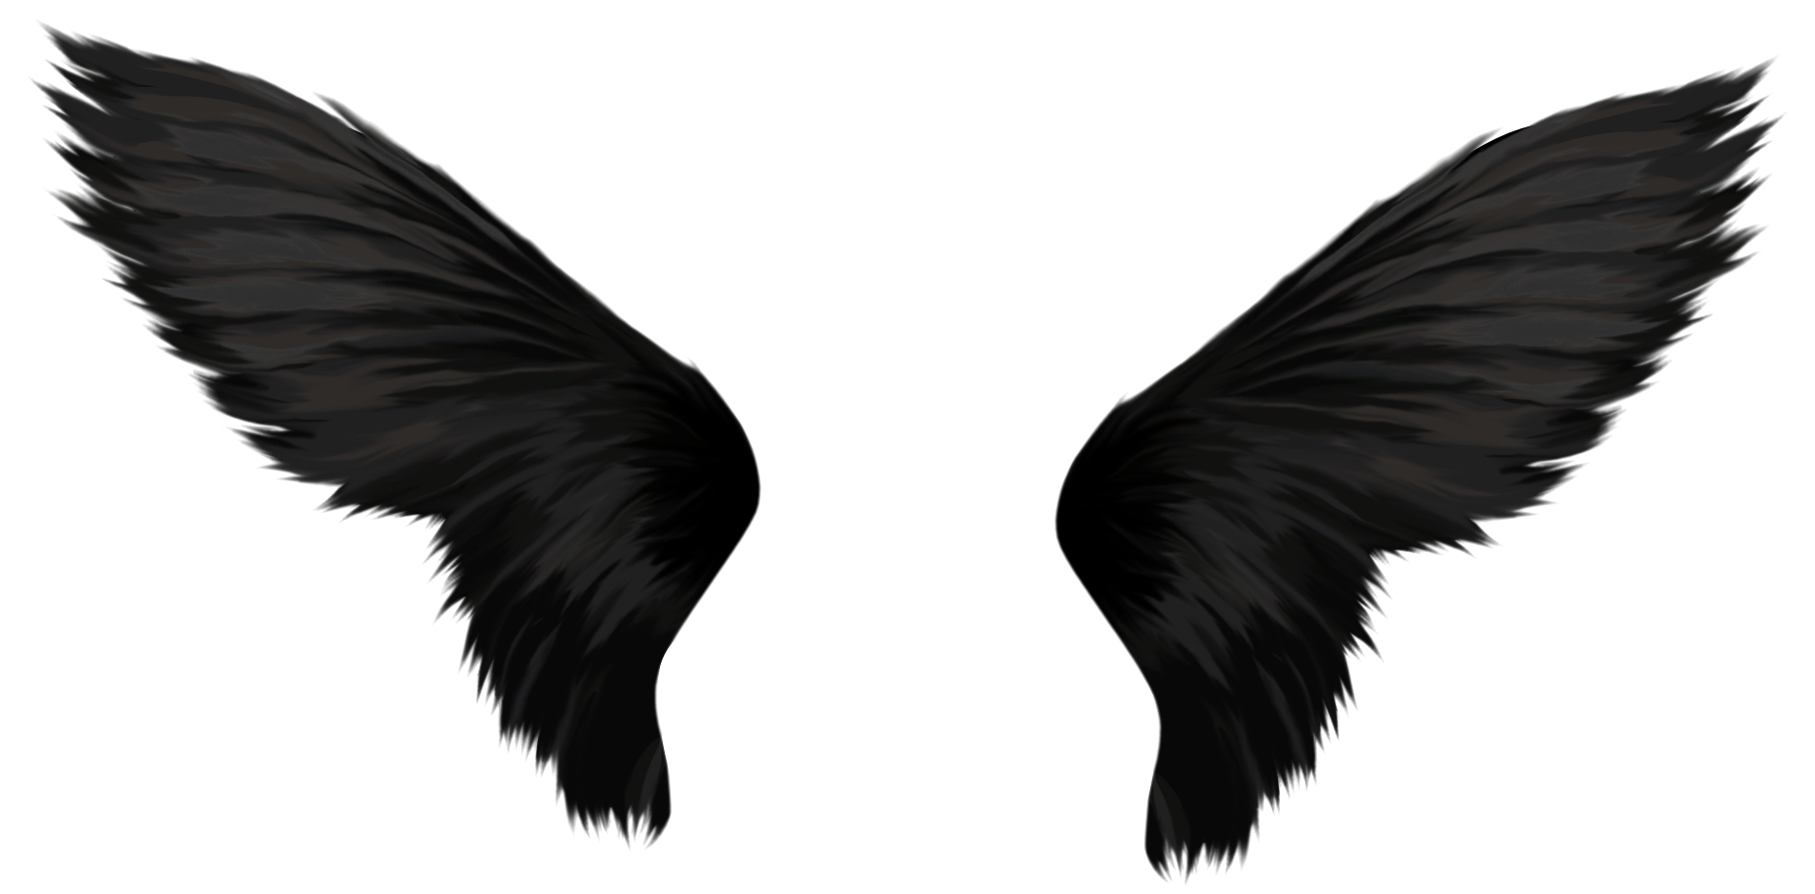 Black angel wings png. Images free download